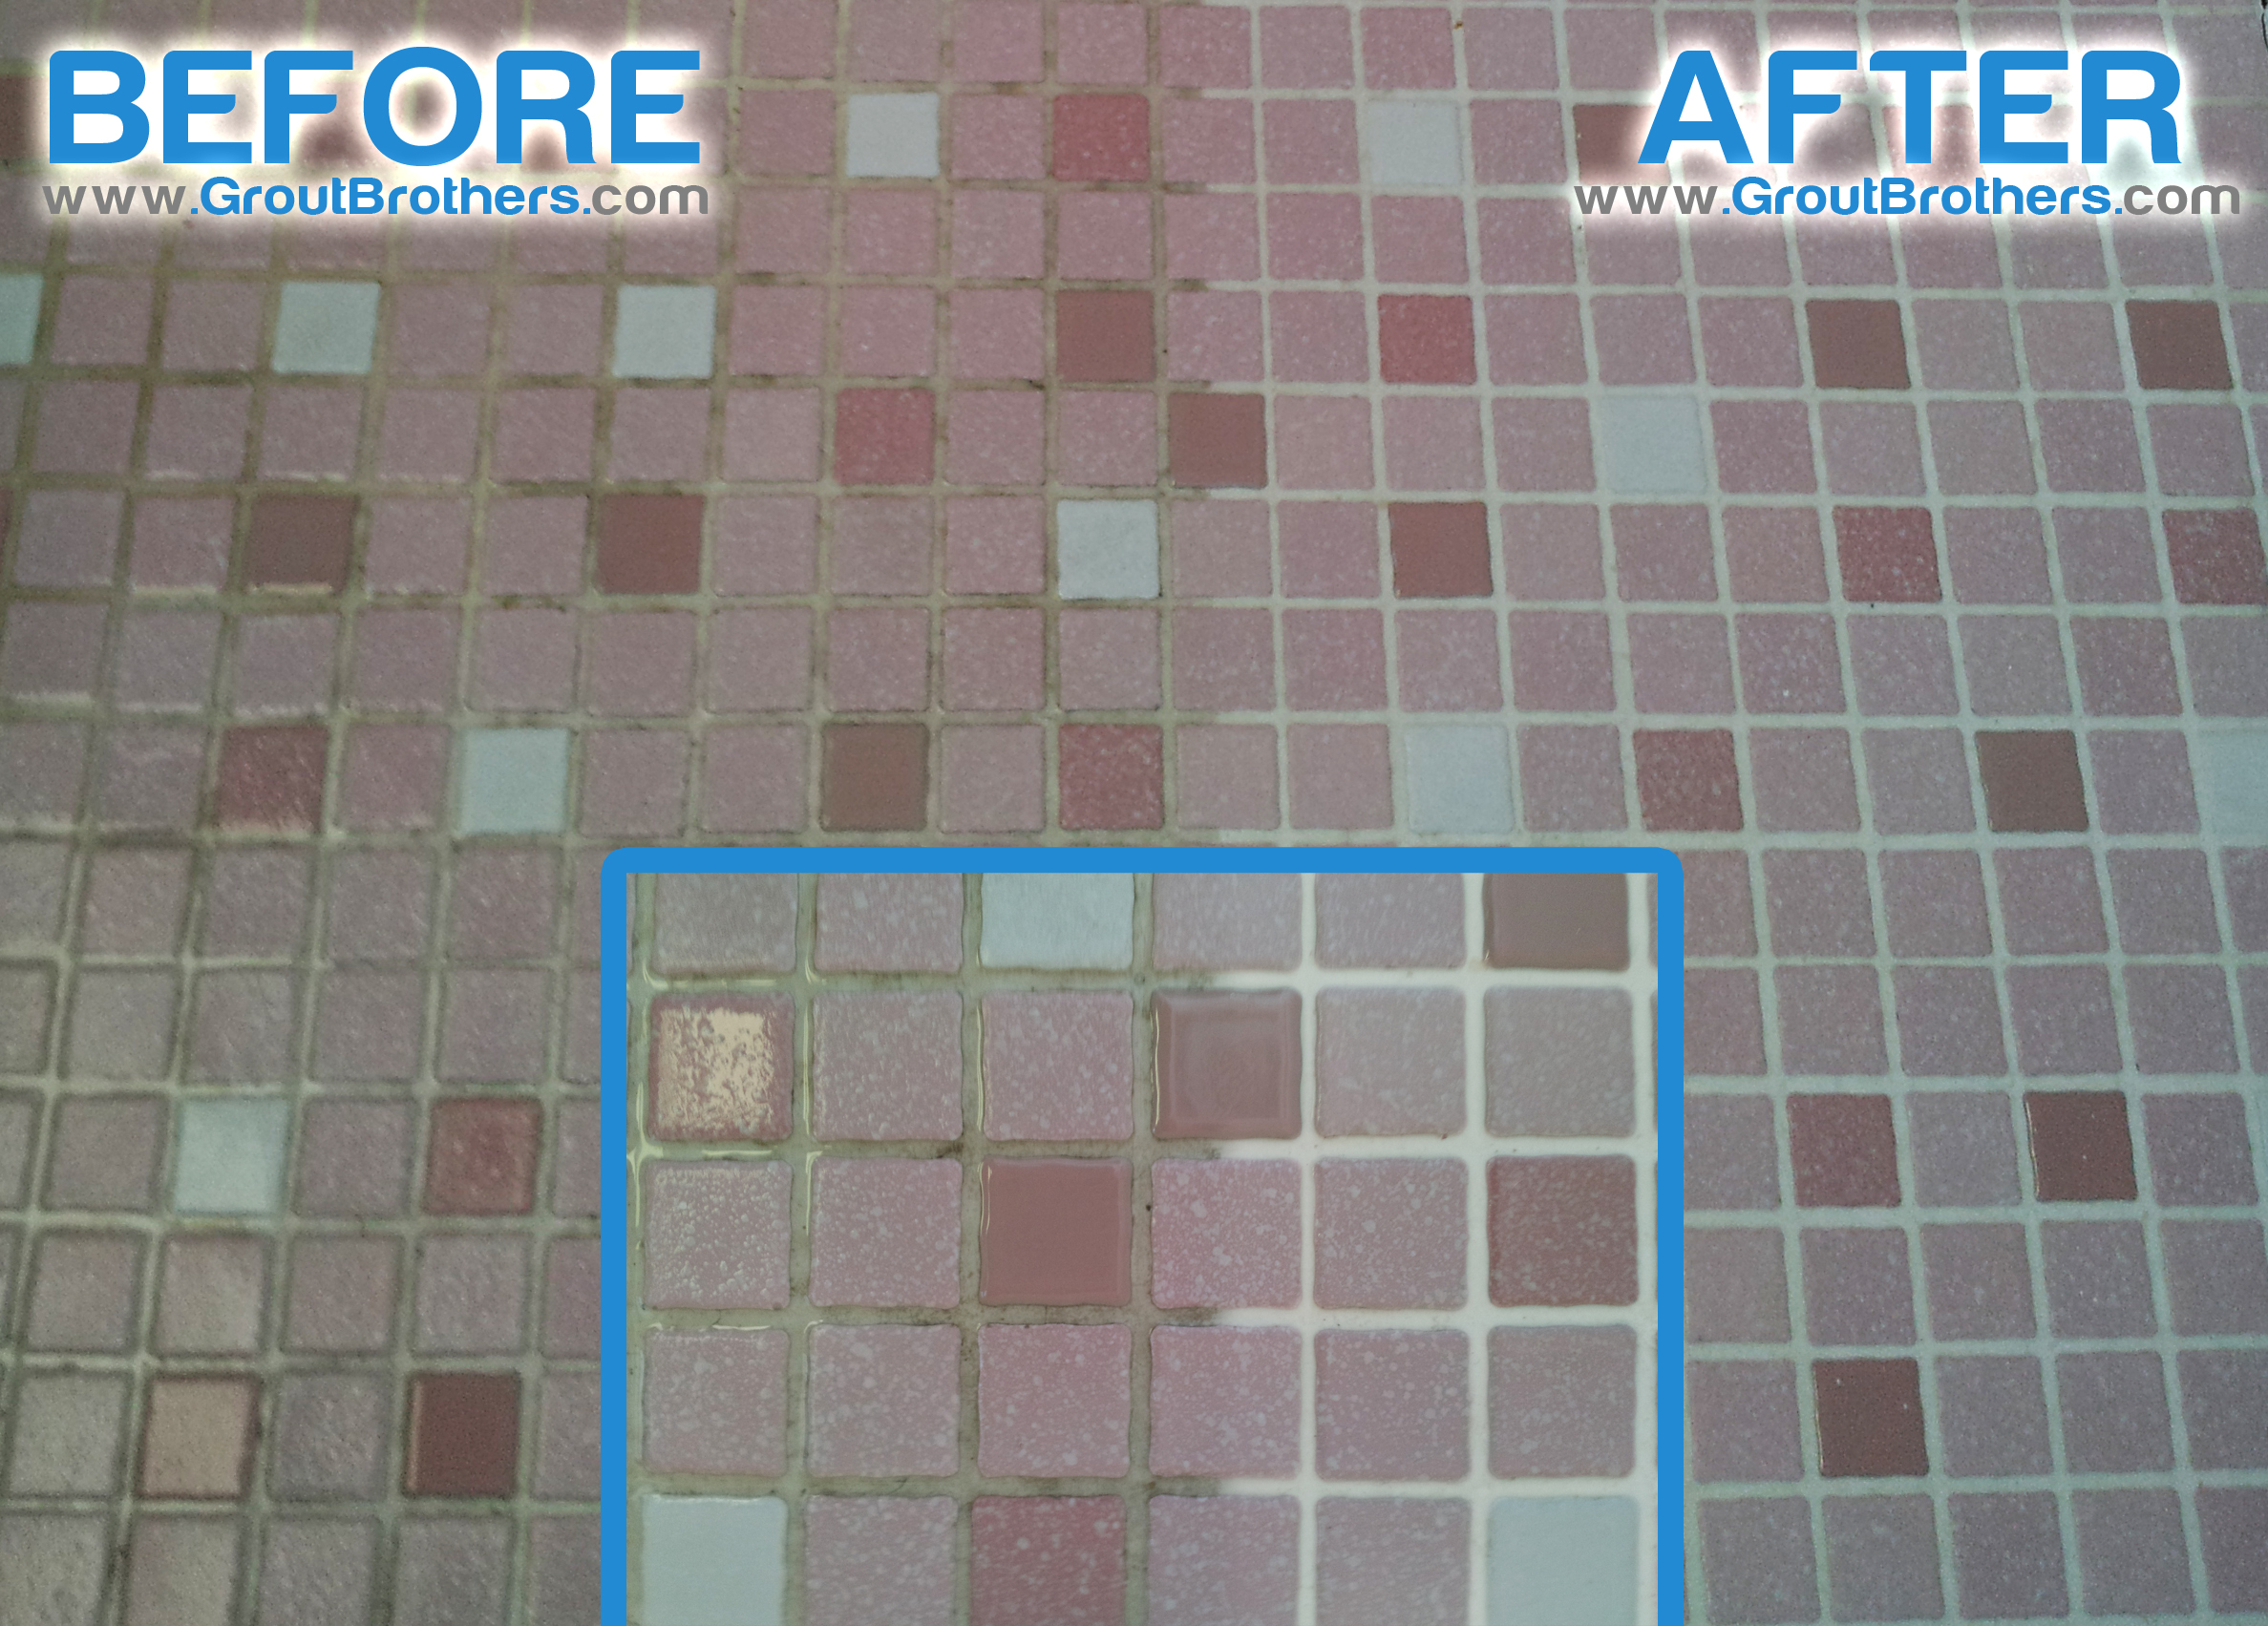 Professional tile and grout cleaning sarasota fl grout brothers tile and grout cleaning dailygadgetfo Choice Image